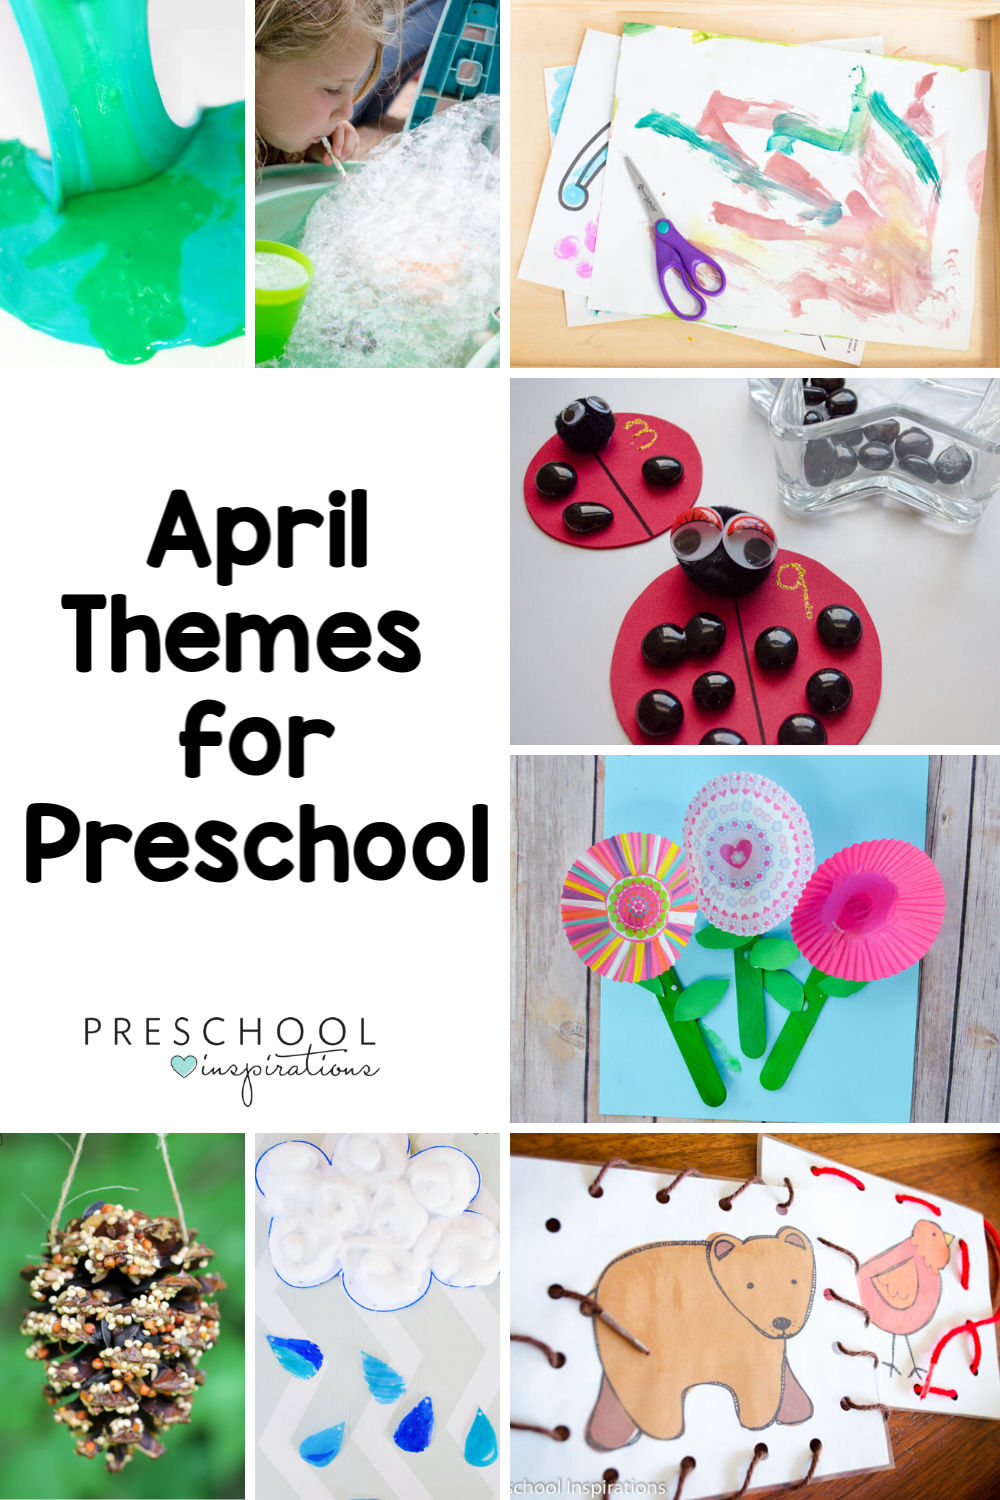 Everything you need to teach preschool this April using themes! Here's lesson plans, crafts, learning activities, and many more ideas for teaching this spring.